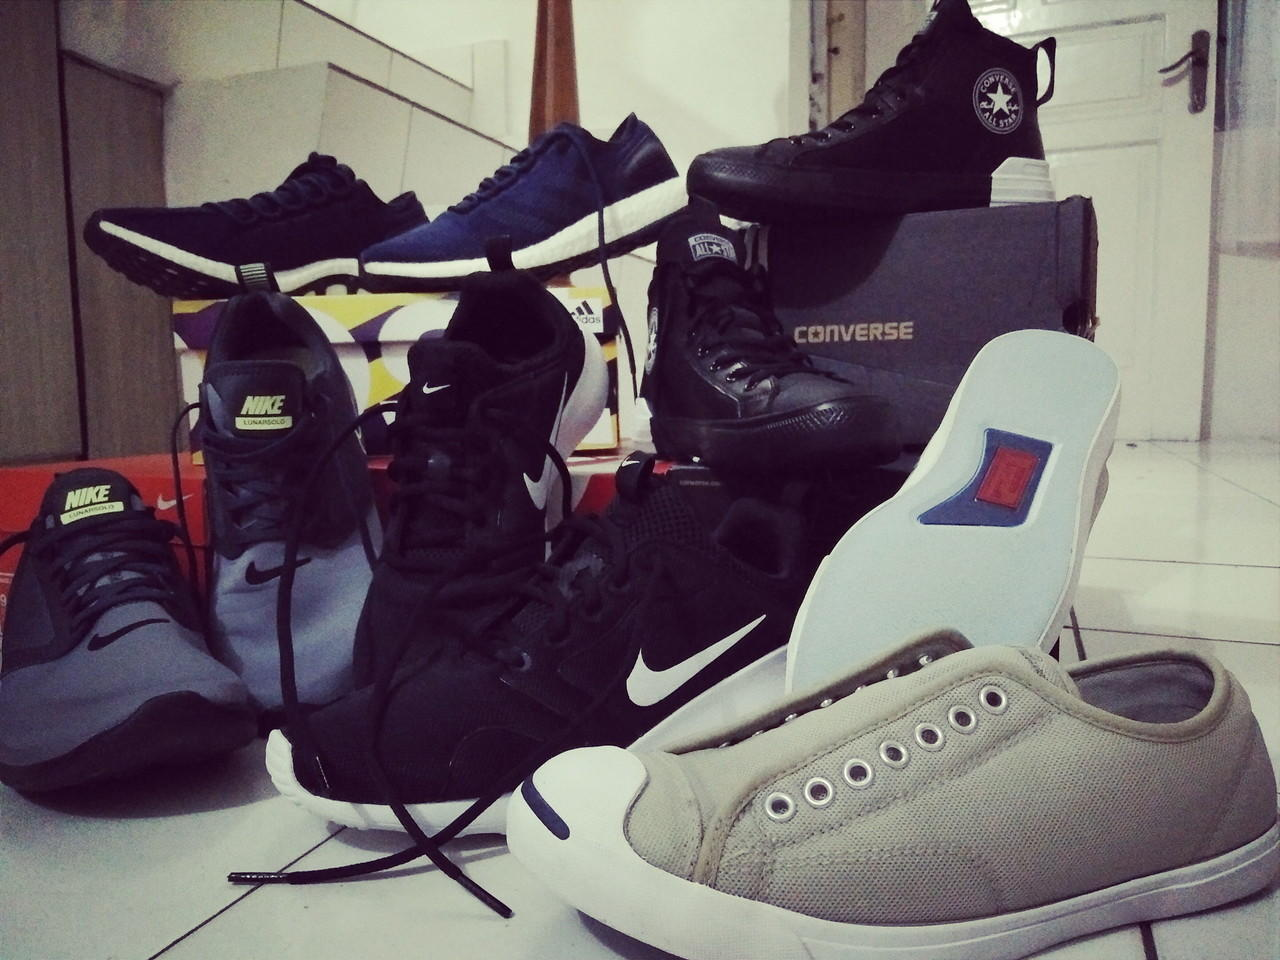 7303f7bd8e Sneaker Addicts == - Part 3 - Page 453 | KASKUS